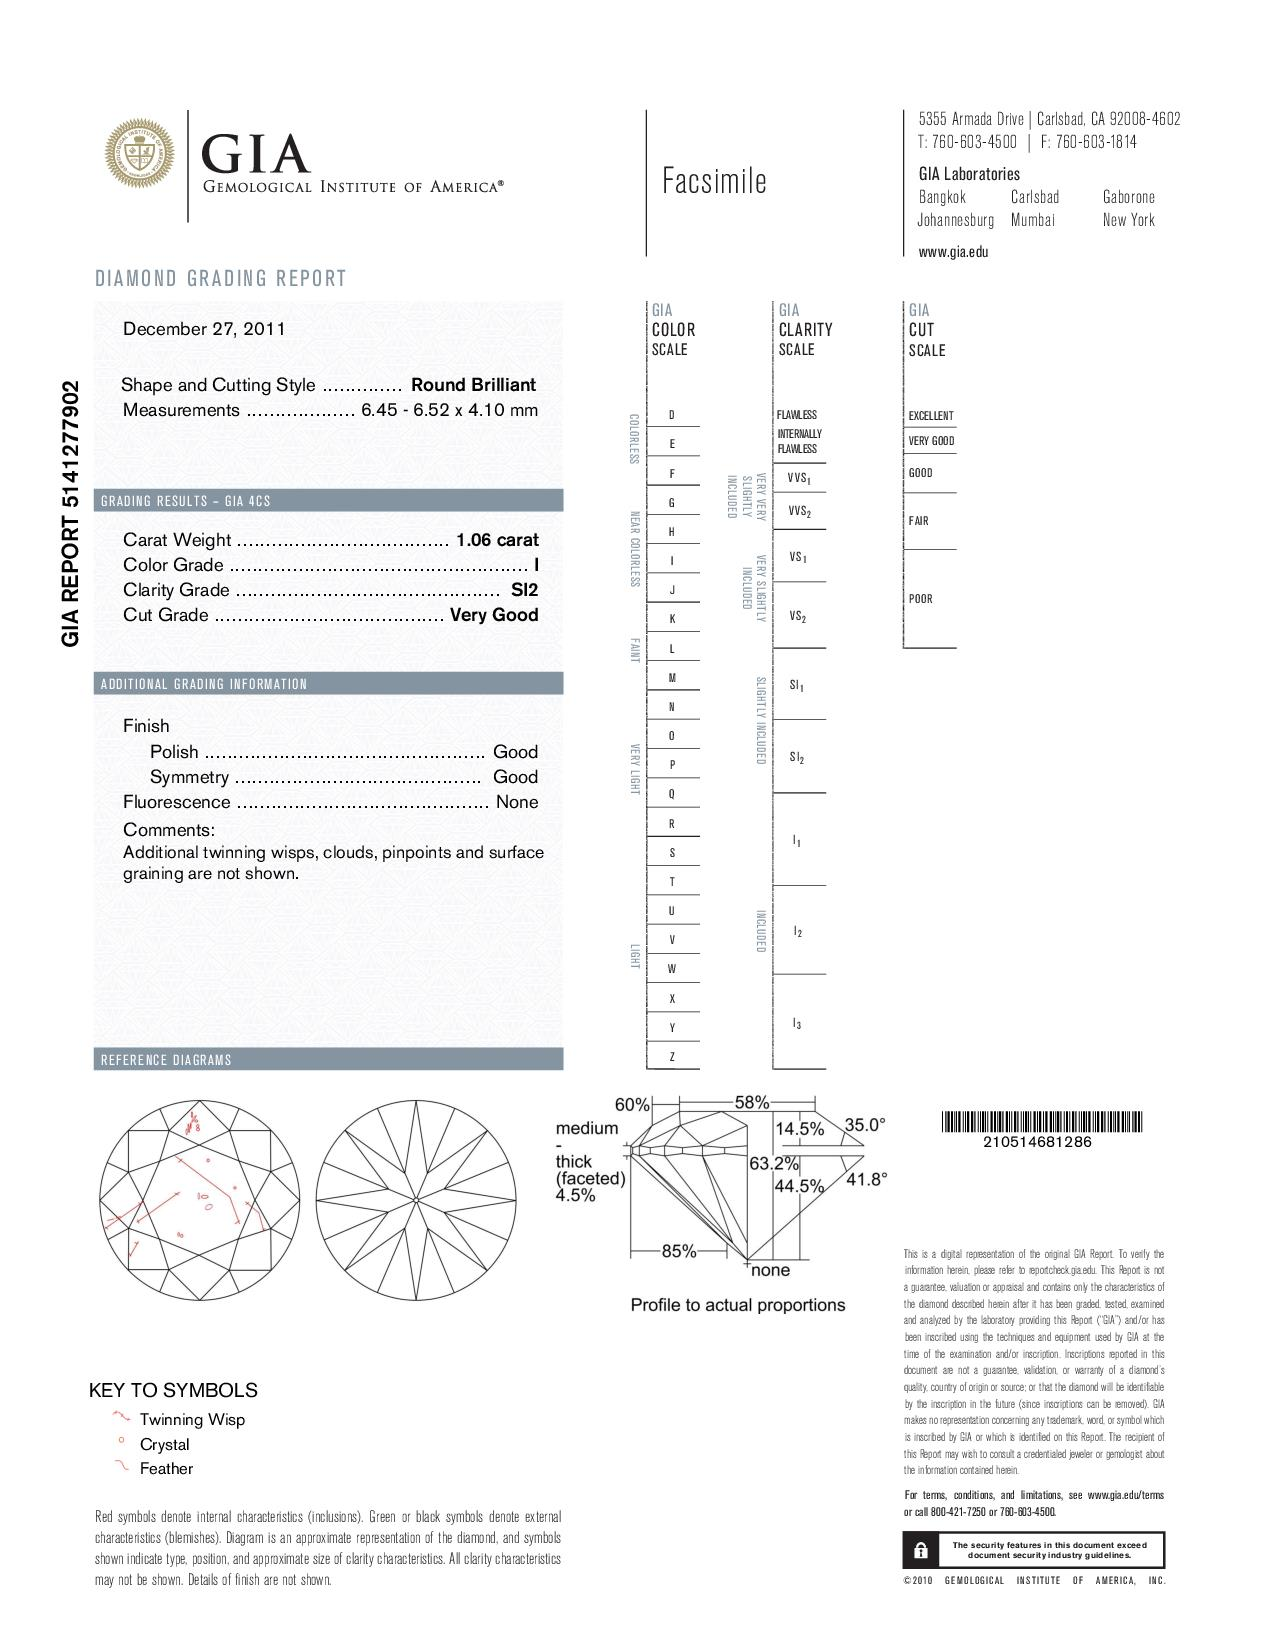 This is a 1.06 carat round shape, I color, SI2 clarity natural diamond accompanied by a GIA grading report.